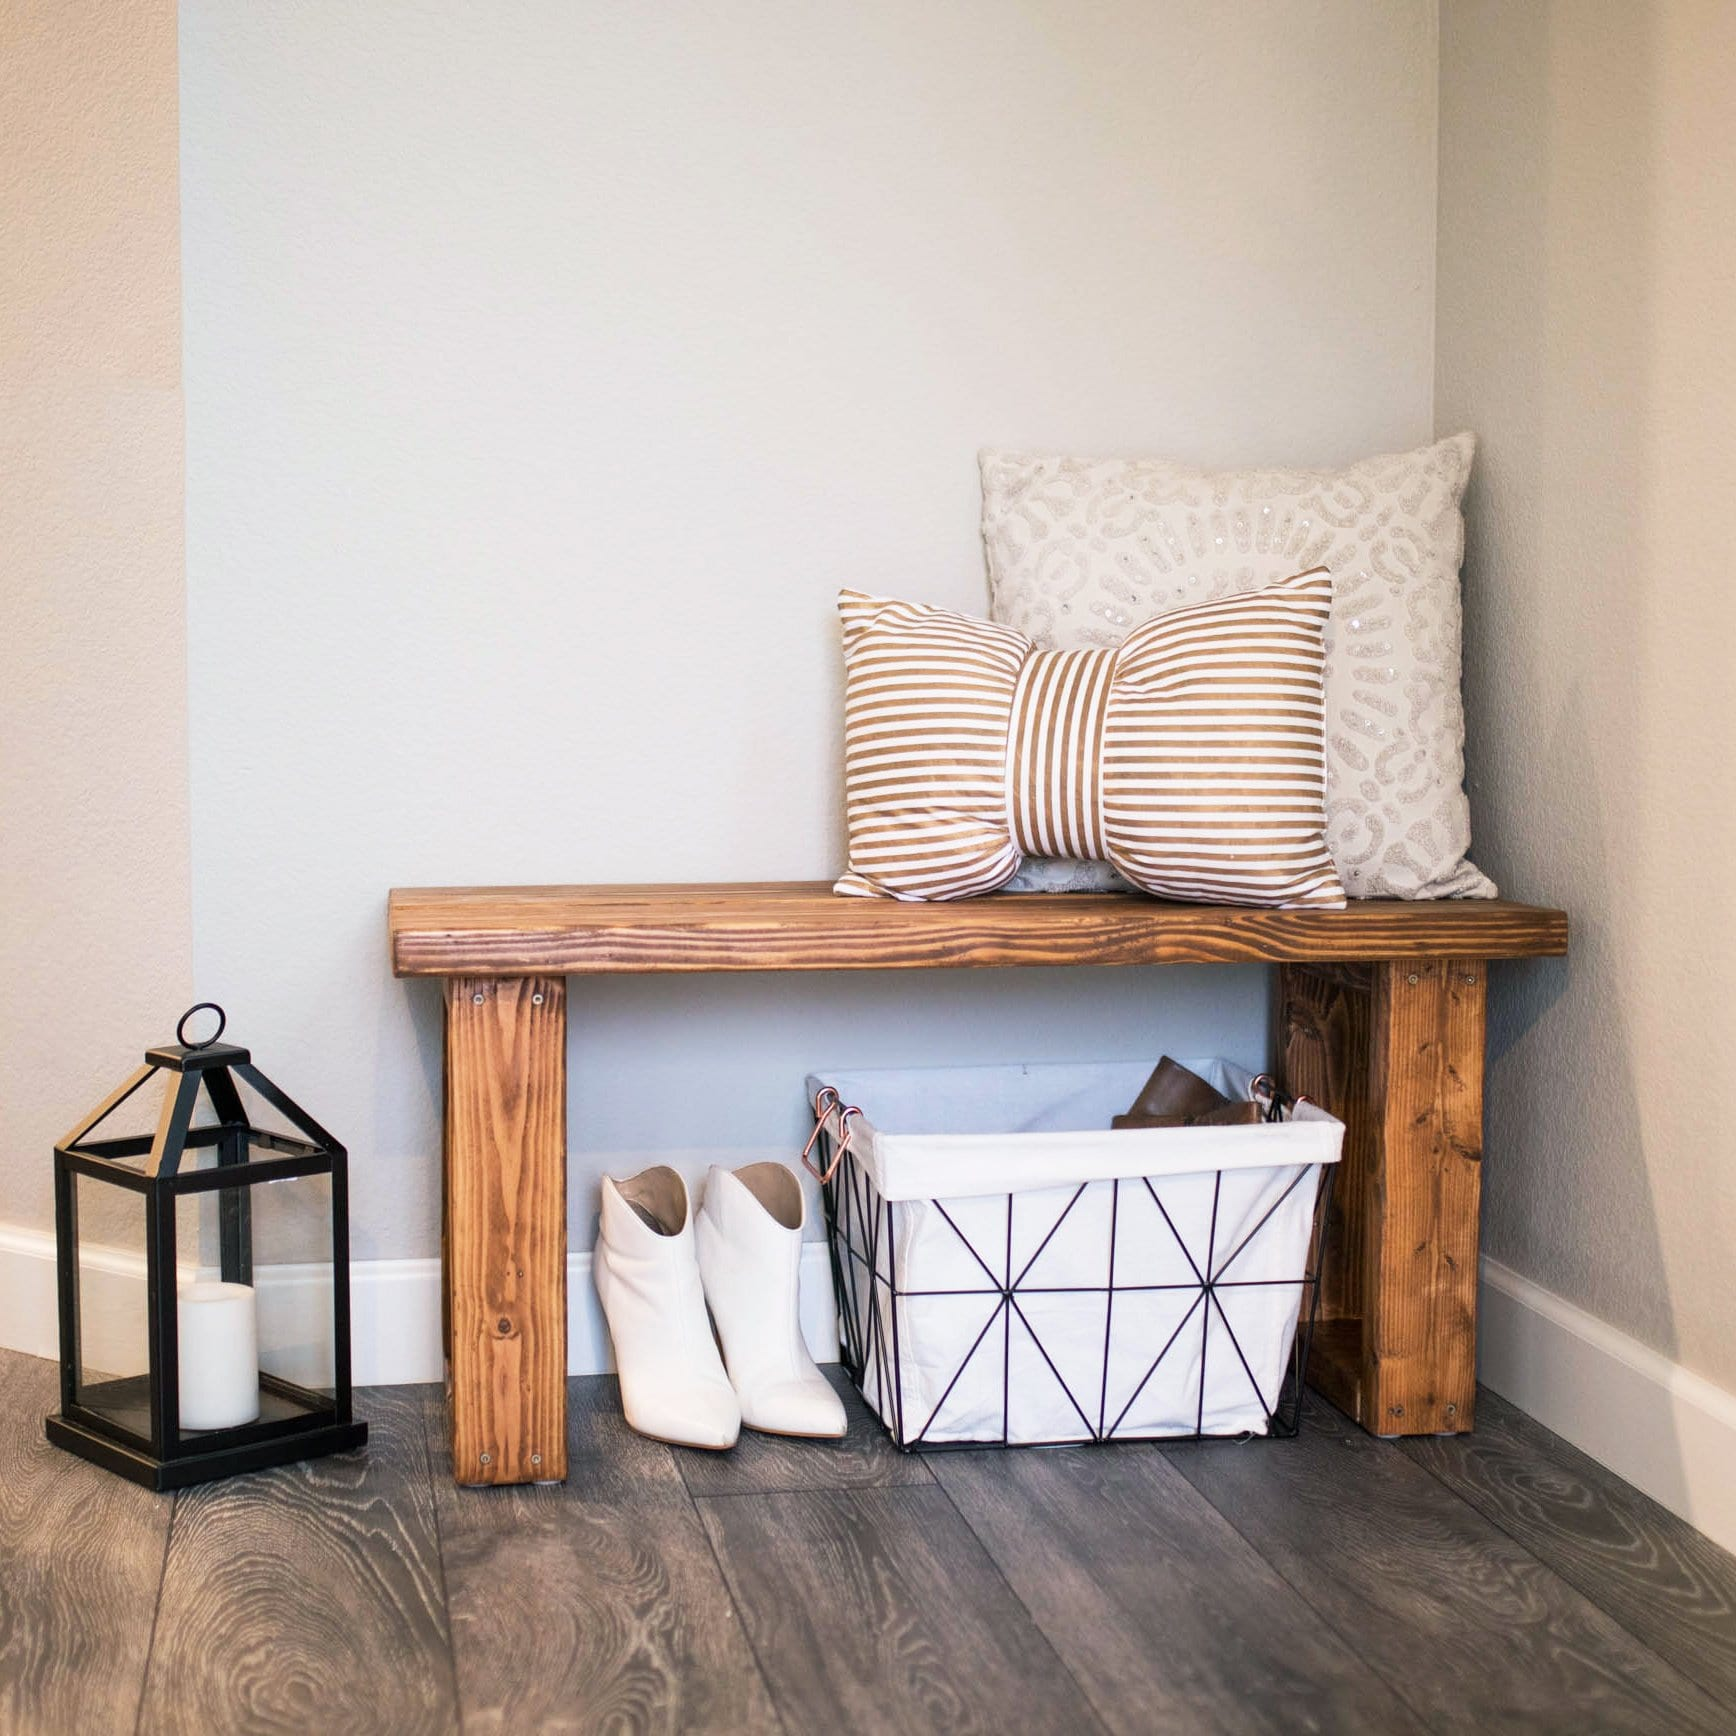 Sensational Make This Gorgeous Diy Entryway Bench For Under 12 Never Machost Co Dining Chair Design Ideas Machostcouk